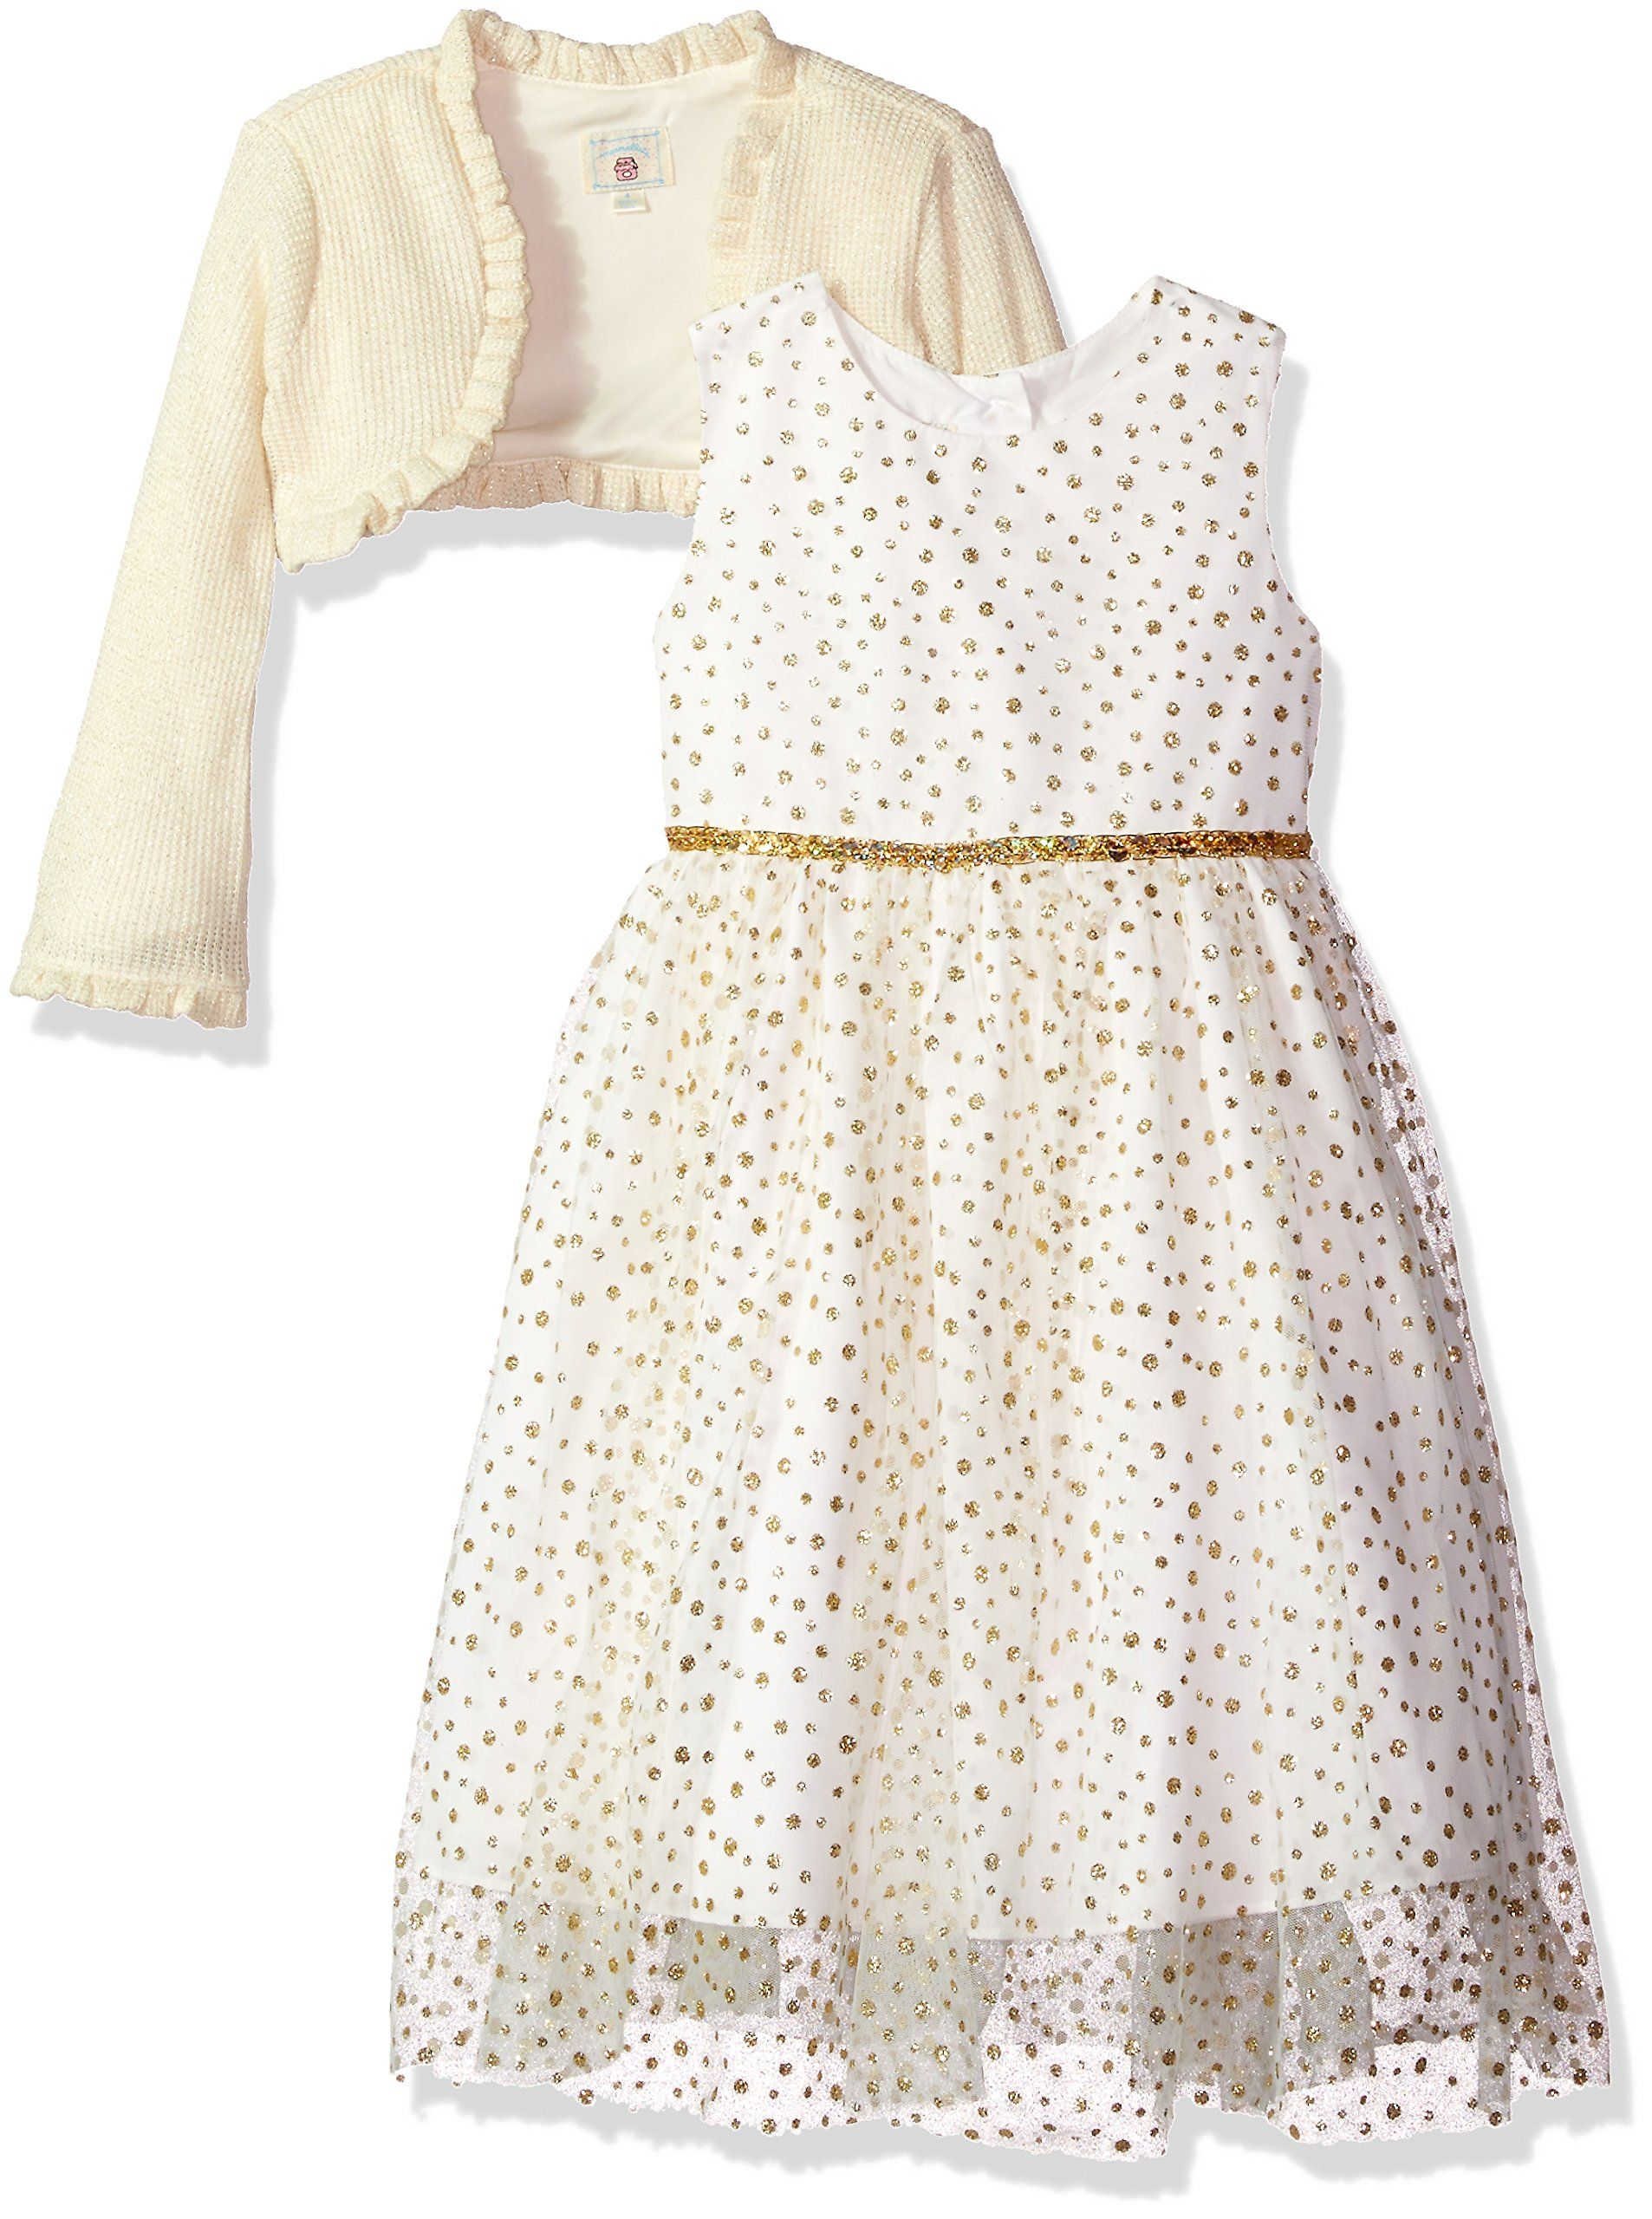 11f272570049 Marmellata Little Girls Holiday Dress With Shrug Ivory Gold 3T ...